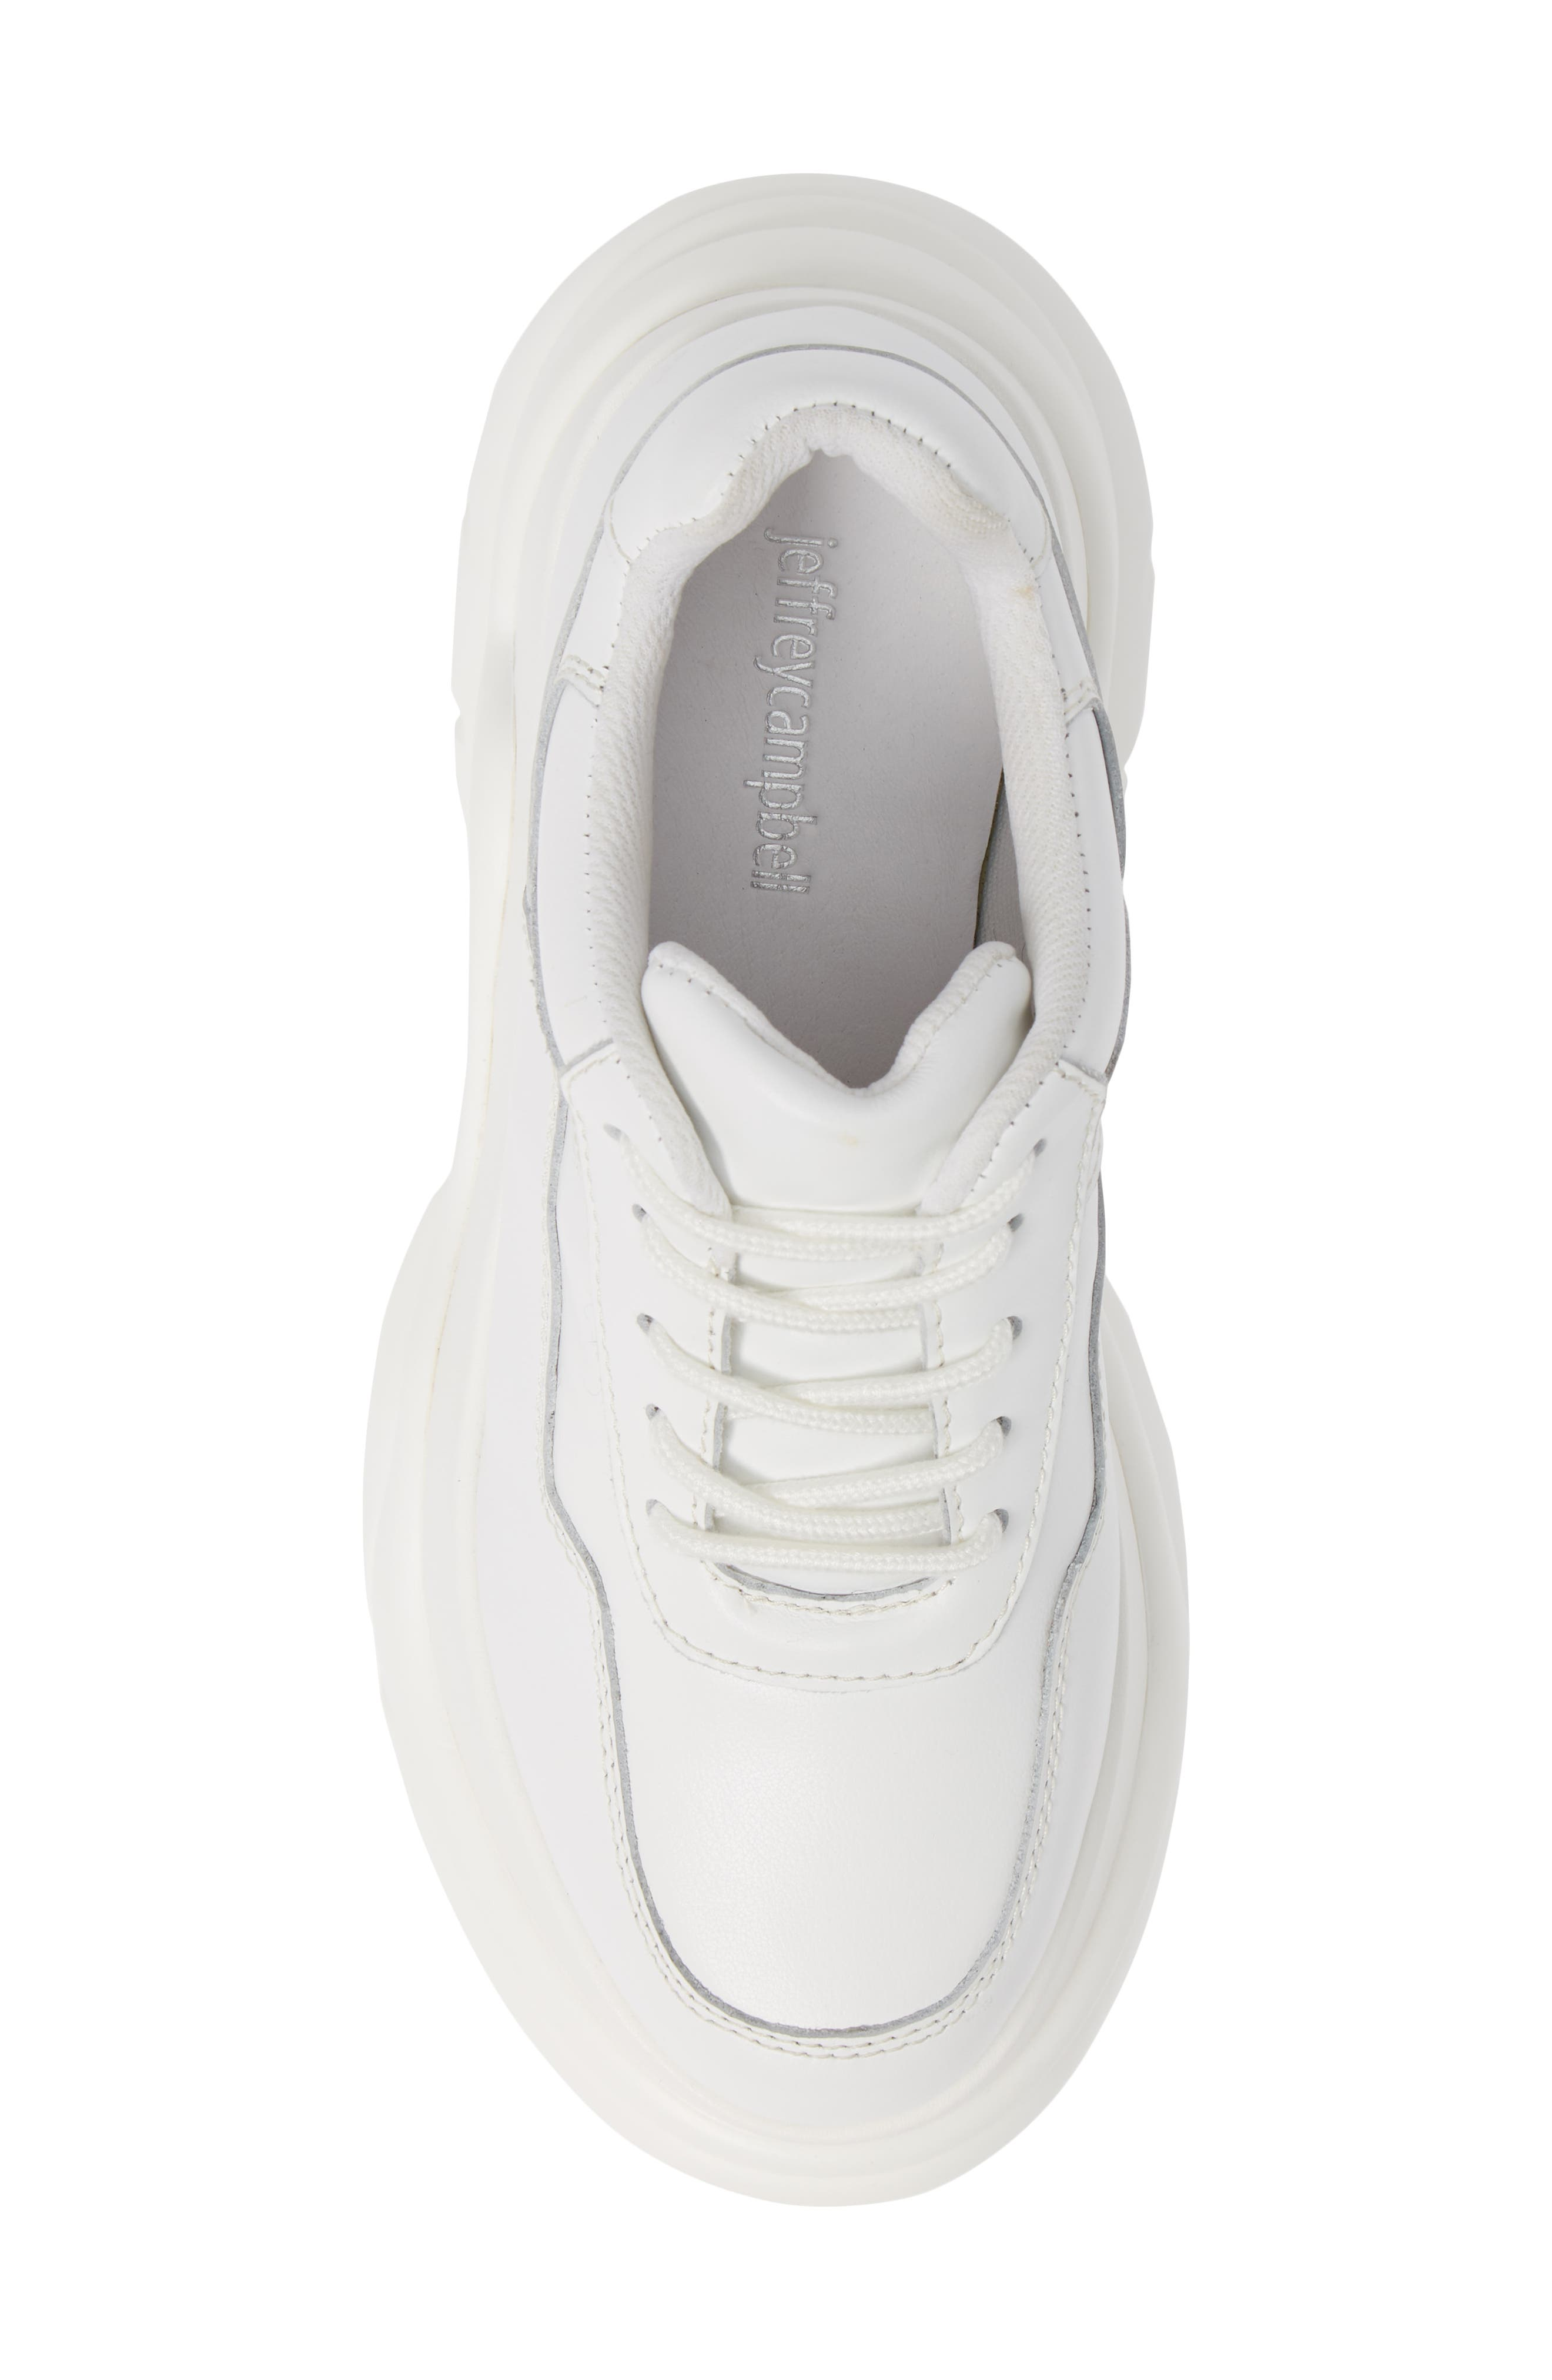 JEFFREY CAMPBELL, Most Def Wedge Sneaker, Alternate thumbnail 5, color, WHITE/ WHITE LEATHER